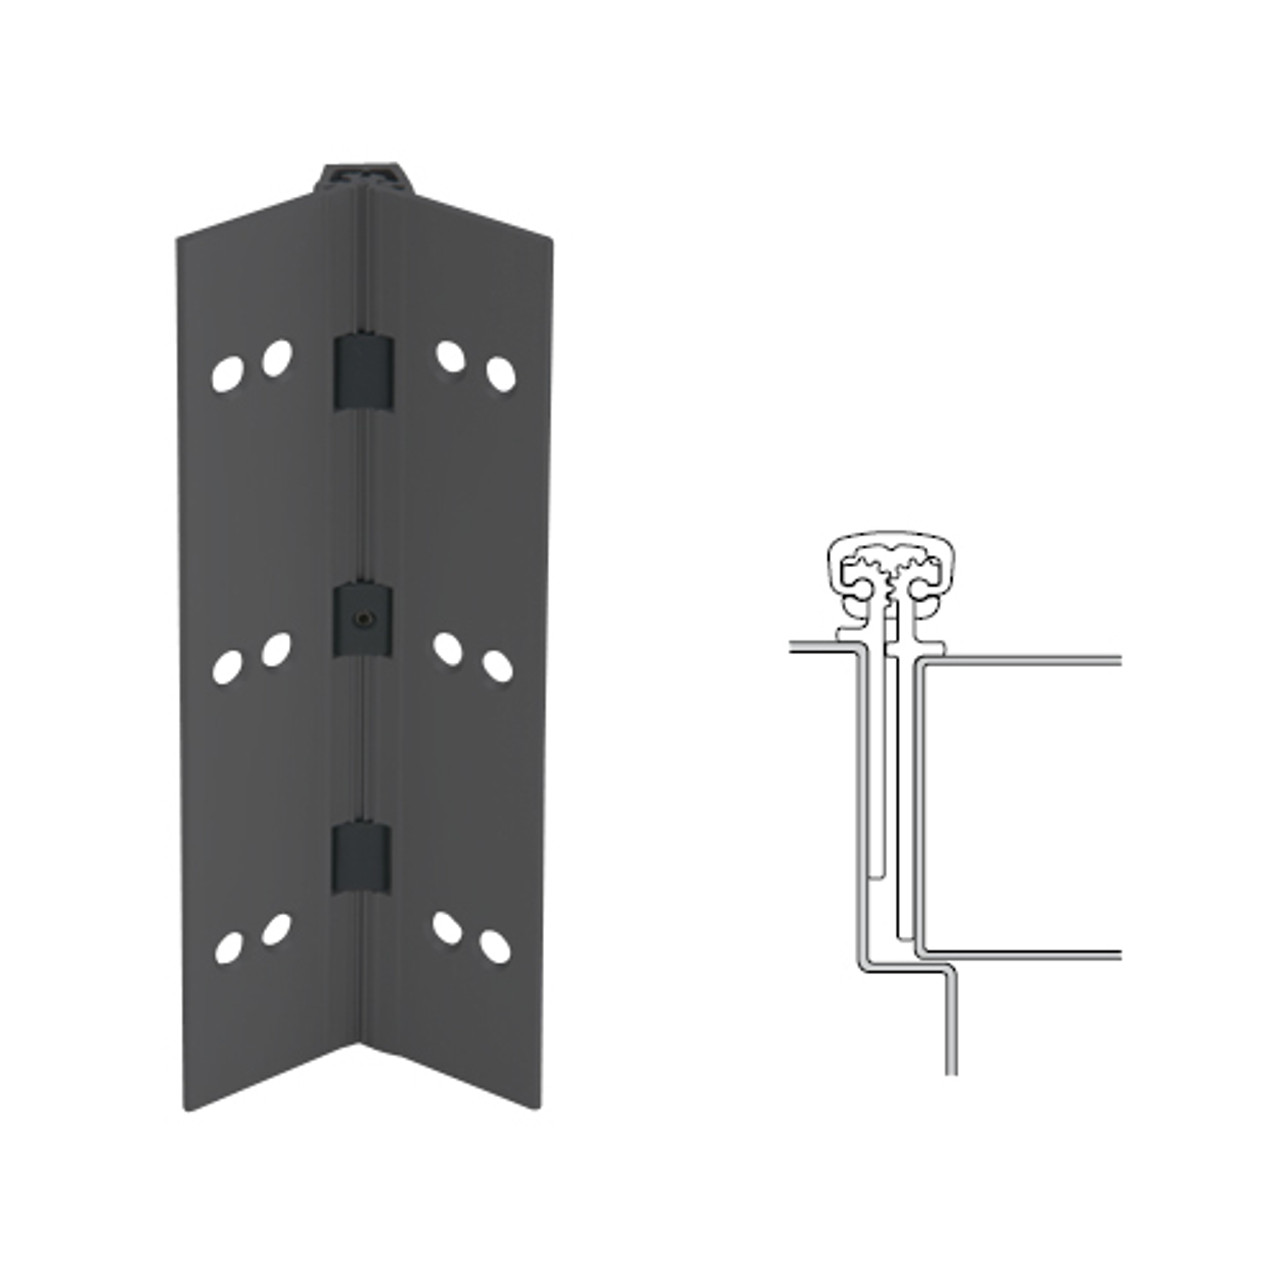 026XY-315AN-120-SECWDWD IVES Full Mortise Continuous Geared Hinges with Security Screws - Hex Pin Drive in Anodized Black